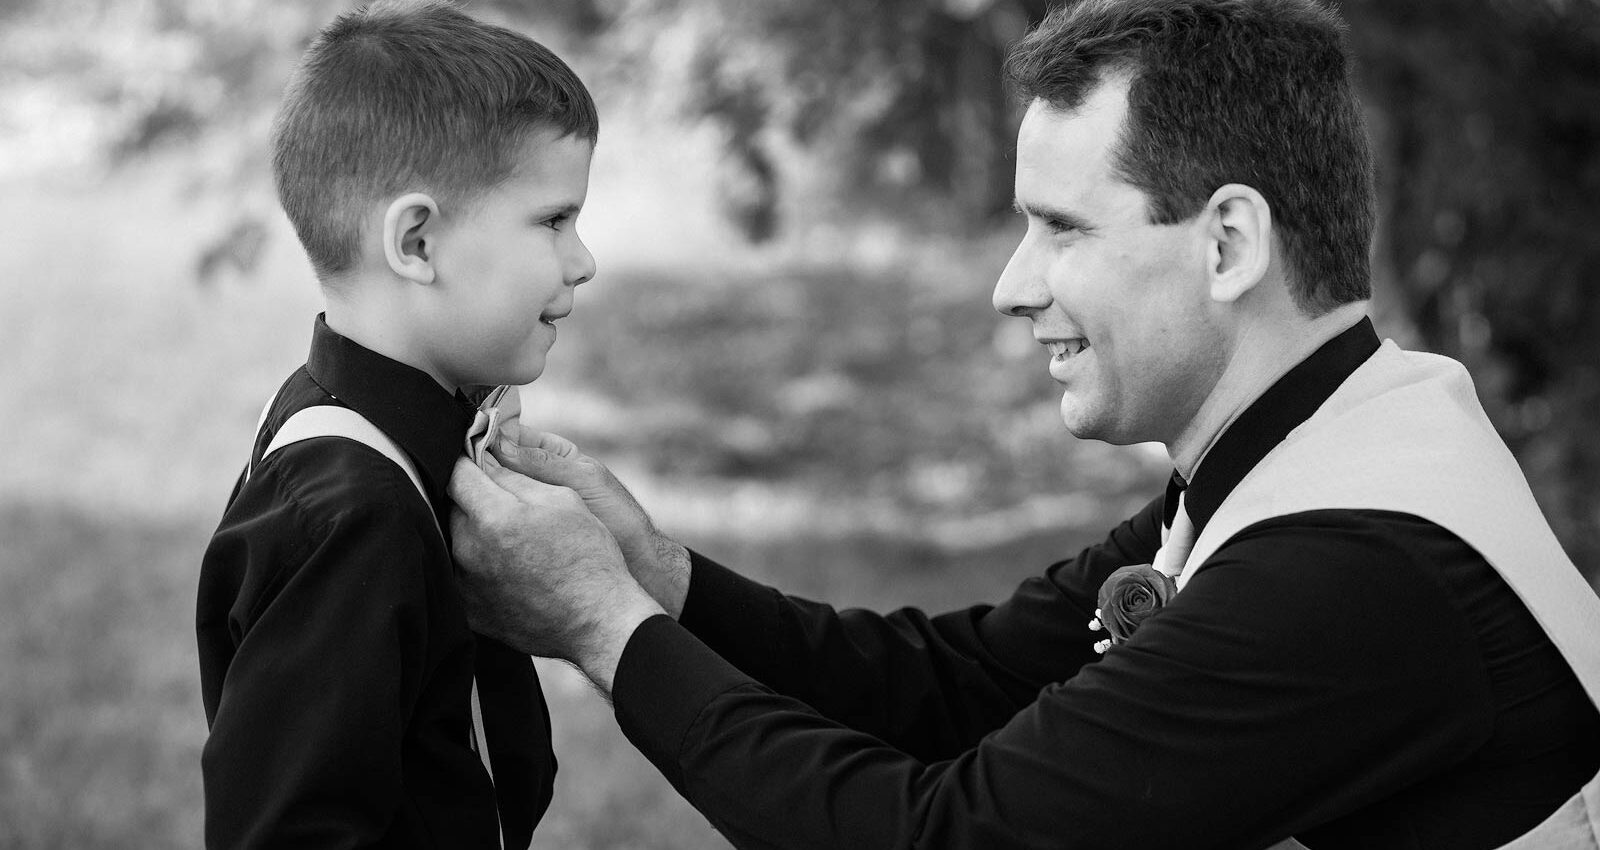 Wedding Photography - Father Helping Son Get Ready - Paul Dekort Photographer